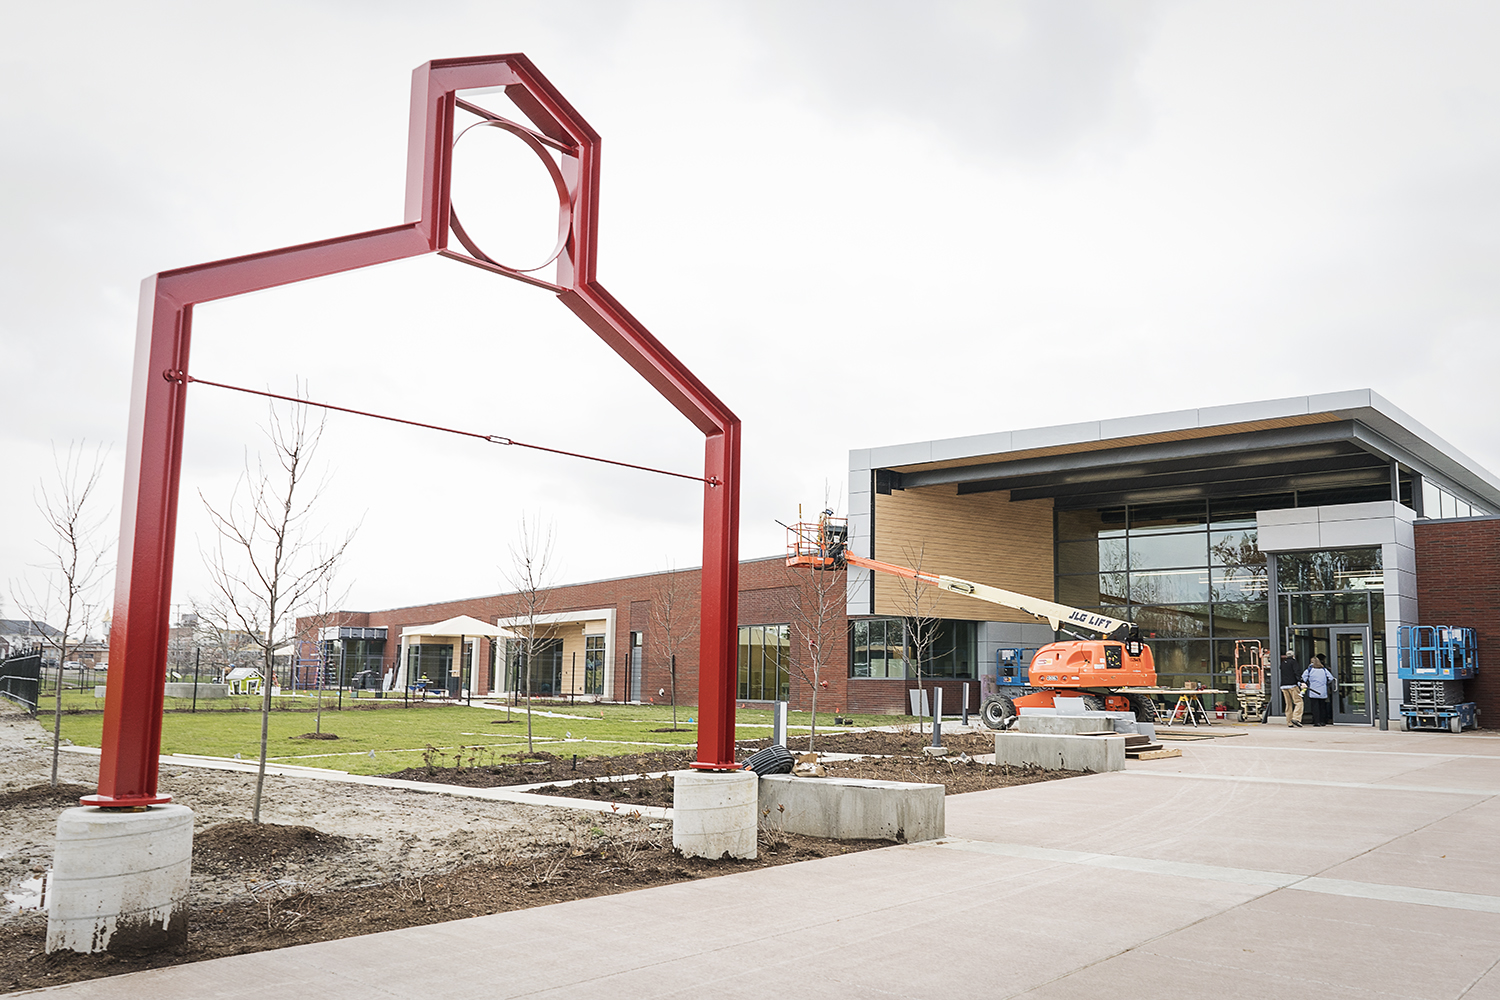 Flint, MI - Tuesday, November 21, 2017: Workers put the finishing touches on the entryway of the new Educare Center in Flint.